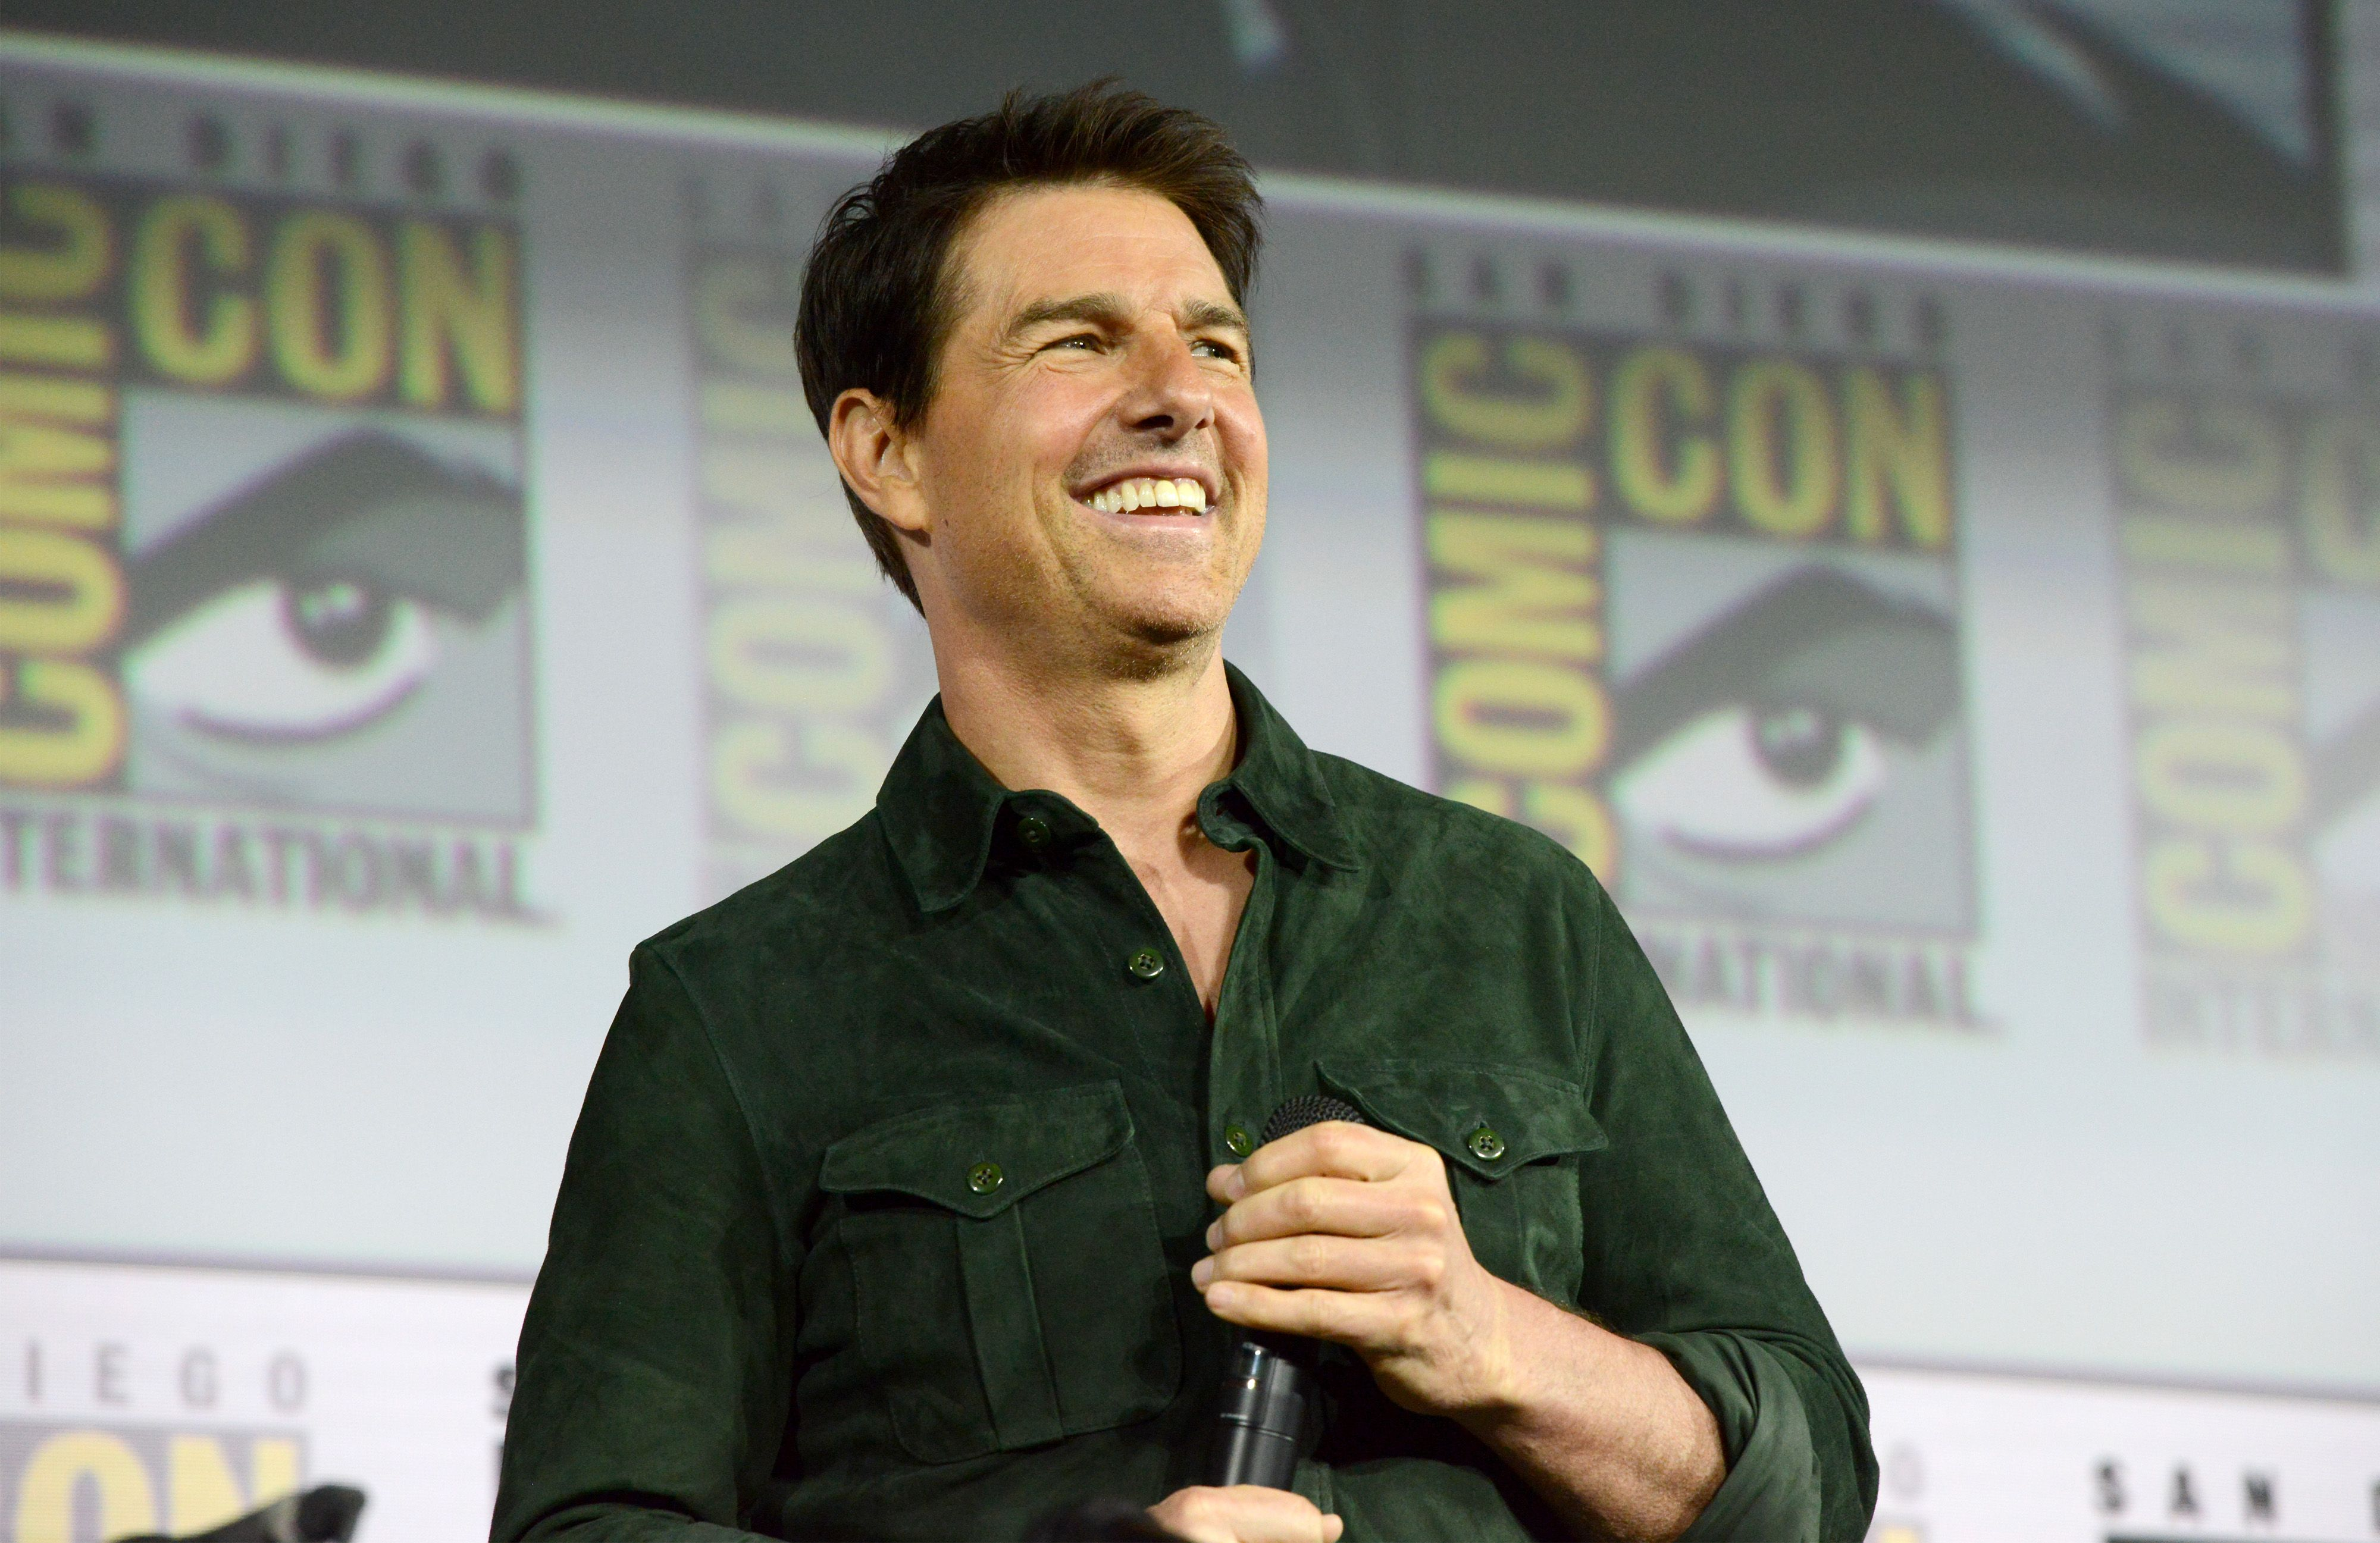 Tom Cruise smiling and holding a microphone at Comic Con.